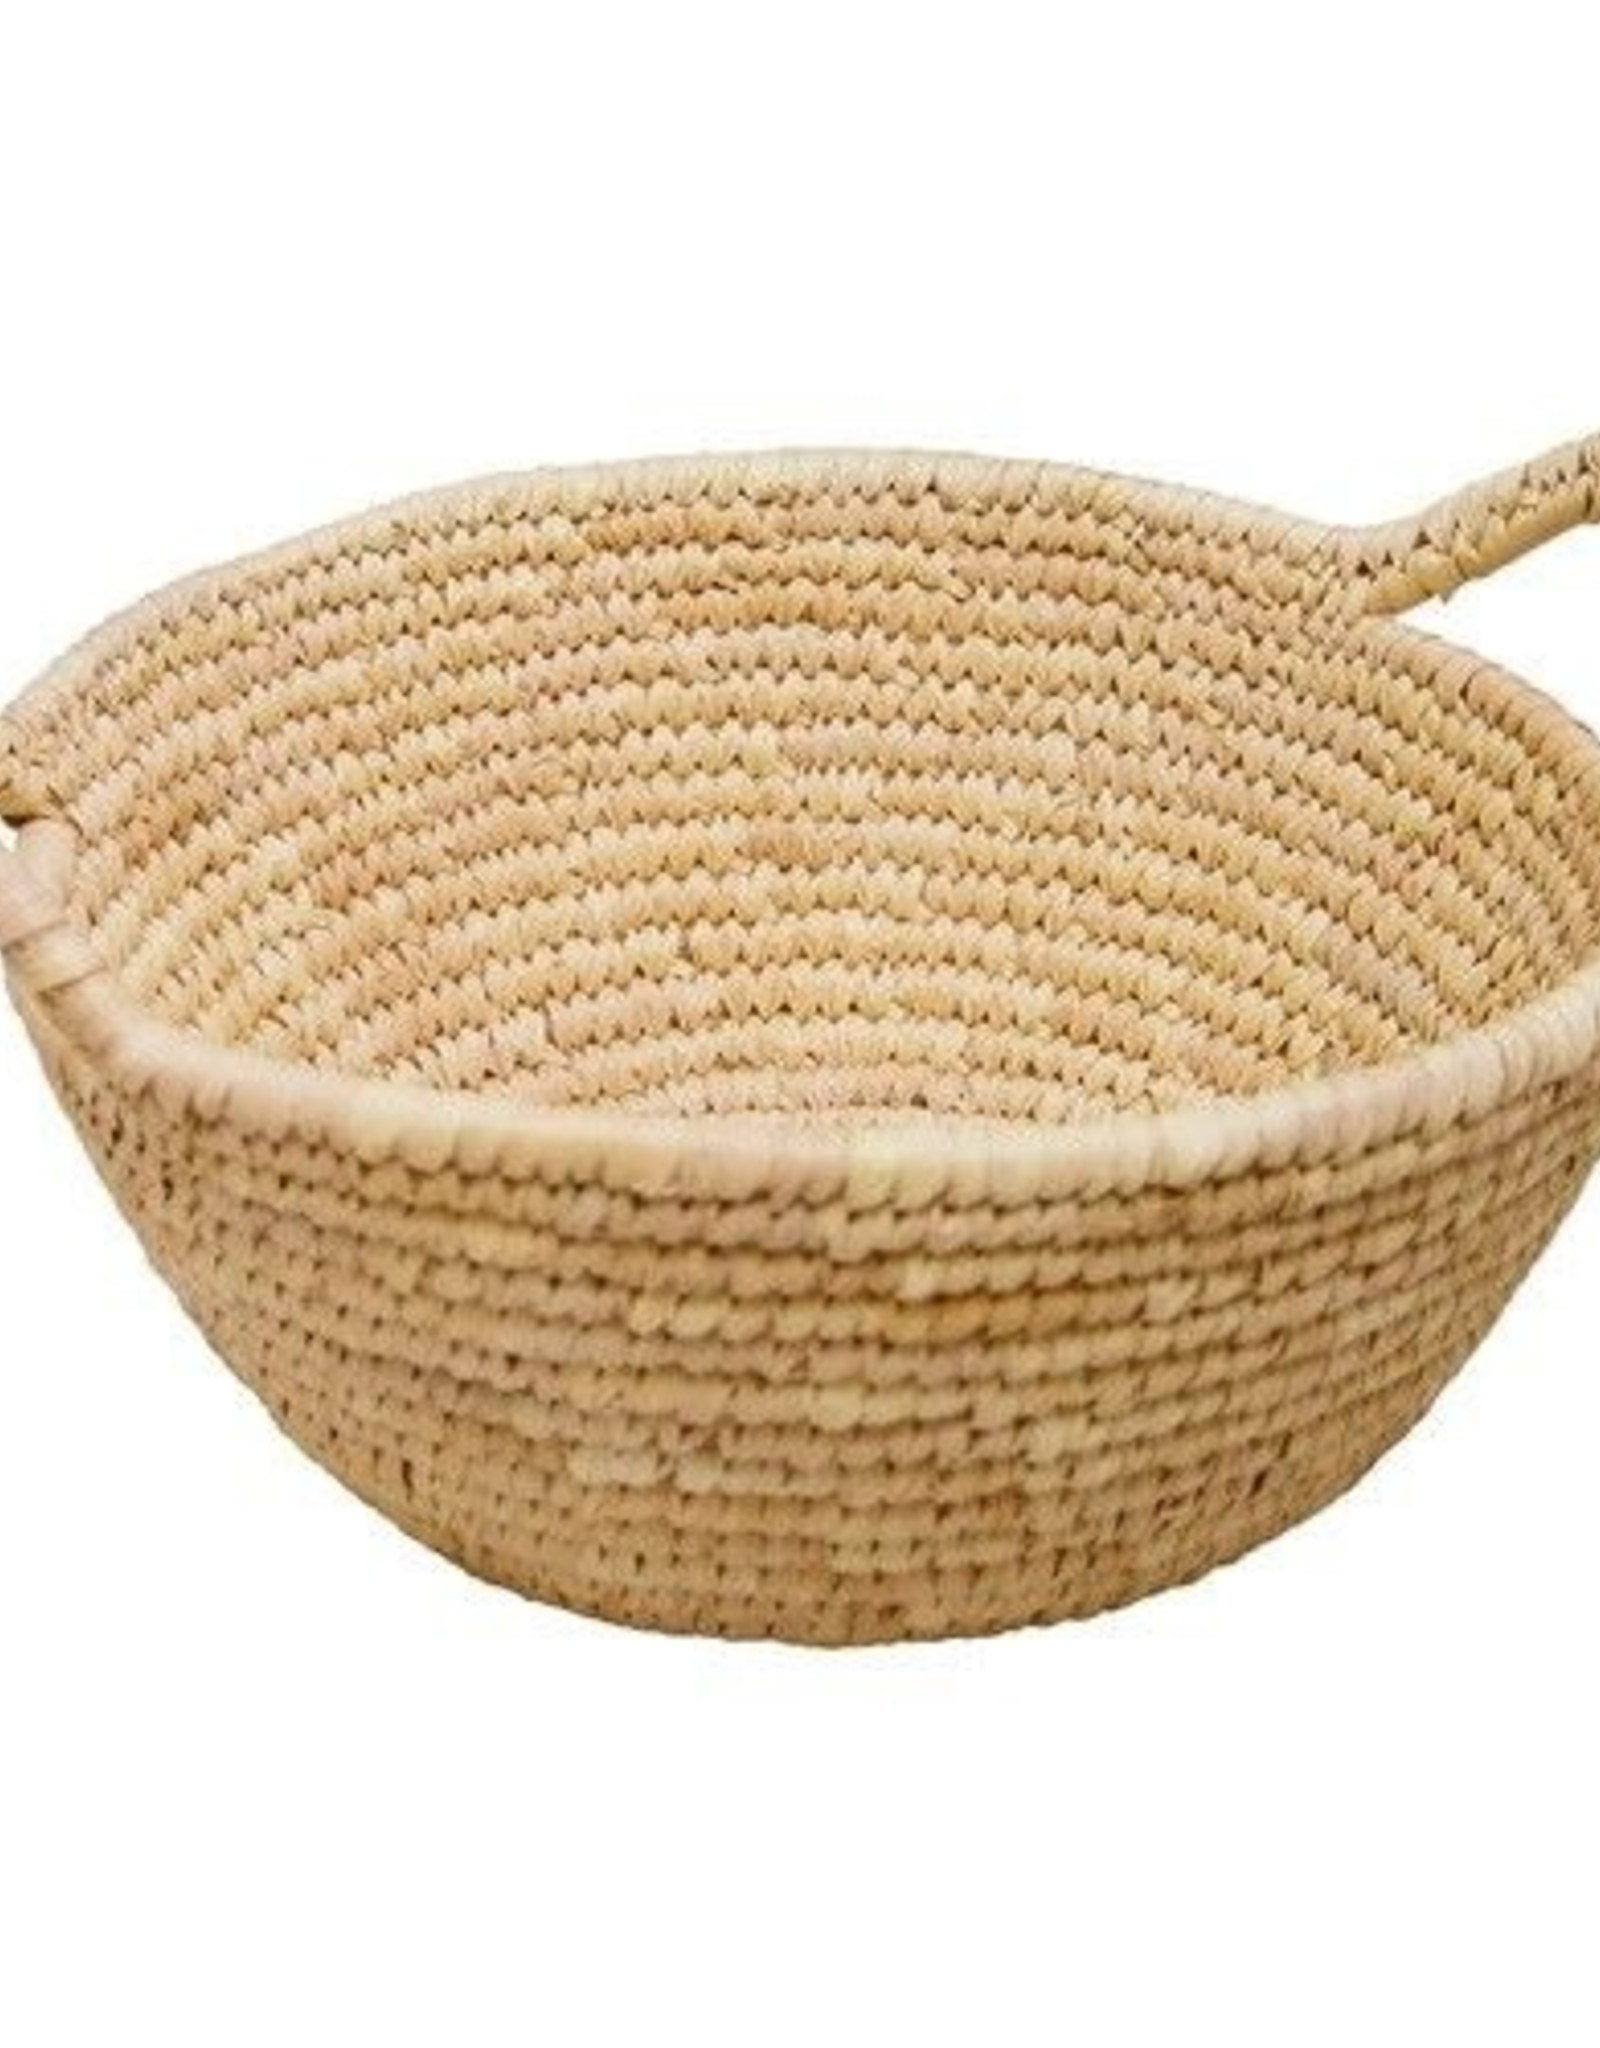 Oval Date Palm Basket